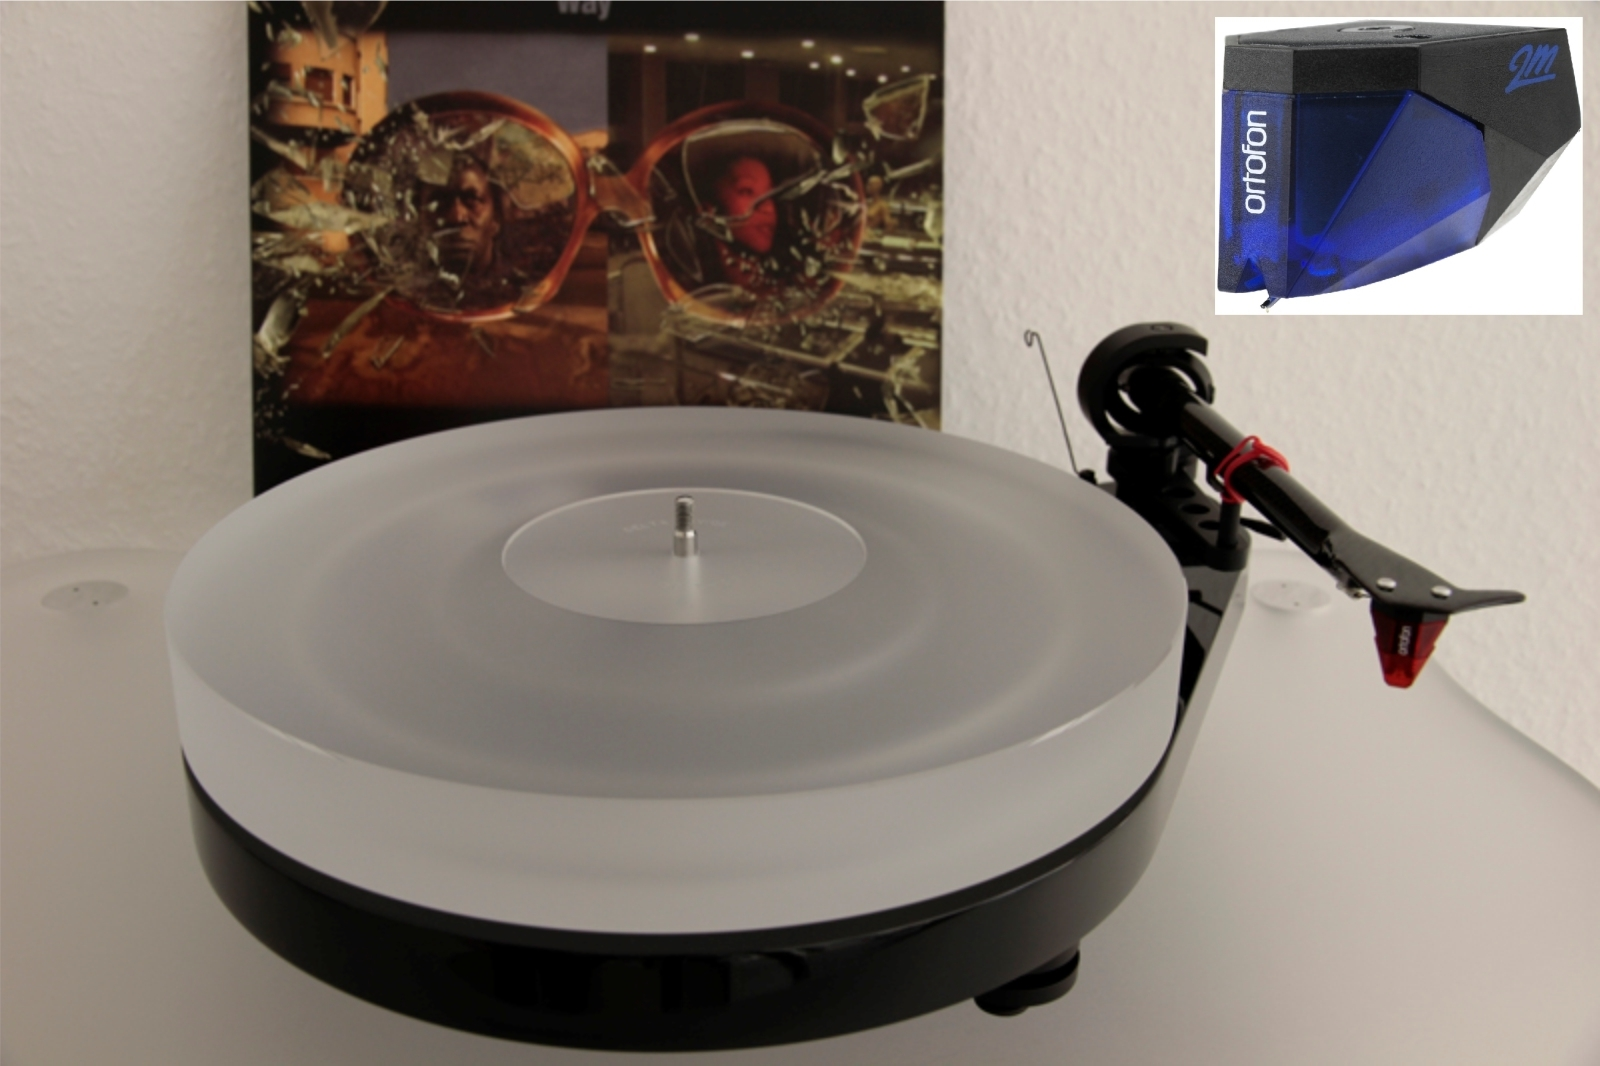 PRO-JECT RPM 5.1 Plattenspieler DELTA DEVICE / Ortofon Blue / Edition Upgrade